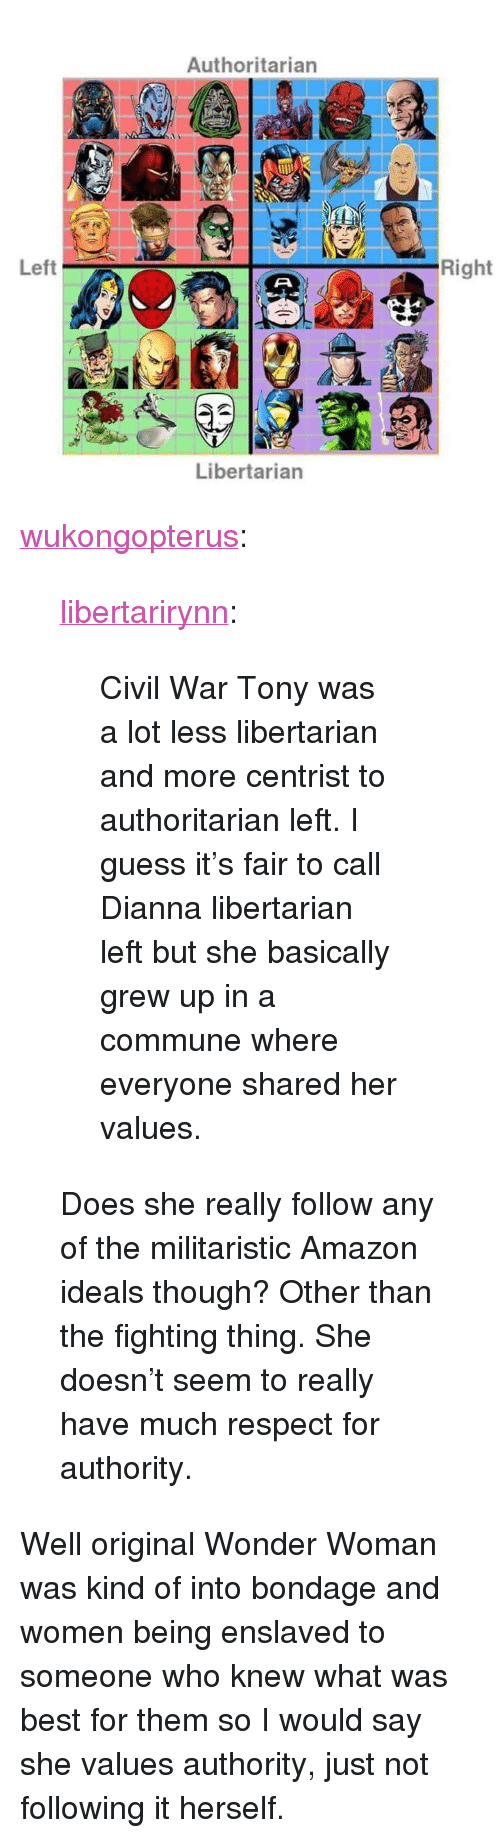 """Amazon, Respect, and Tumblr: Authoritarian  Left  Right  Libertarian <p><a href=""""http://wukongopterus.tumblr.com/post/167791668842/libertarirynn-civil-war-tony-was-a-lot-less"""" class=""""tumblr_blog"""">wukongopterus</a>:</p>  <blockquote><p><a href=""""https://libertarirynn.tumblr.com/post/167790975239/civil-war-tony-was-a-lot-less-libertarian-and-more"""" class=""""tumblr_blog"""">libertarirynn</a>:</p>  <blockquote><p>Civil War Tony was a lot less libertarian and more centrist to authoritarian left. I guess it's fair to call Dianna libertarian left but she basically grew up in a commune where everyone shared her values.</p></blockquote>  <p>Does she really follow any of the militaristic Amazon ideals though? Other than the fighting thing. She doesn't seem to really have much respect for authority. </p></blockquote>  <p>Well original Wonder Woman was kind of into bondage and women being enslaved to someone who knew what was best for them so I would say she values authority, just not following it herself.</p>"""